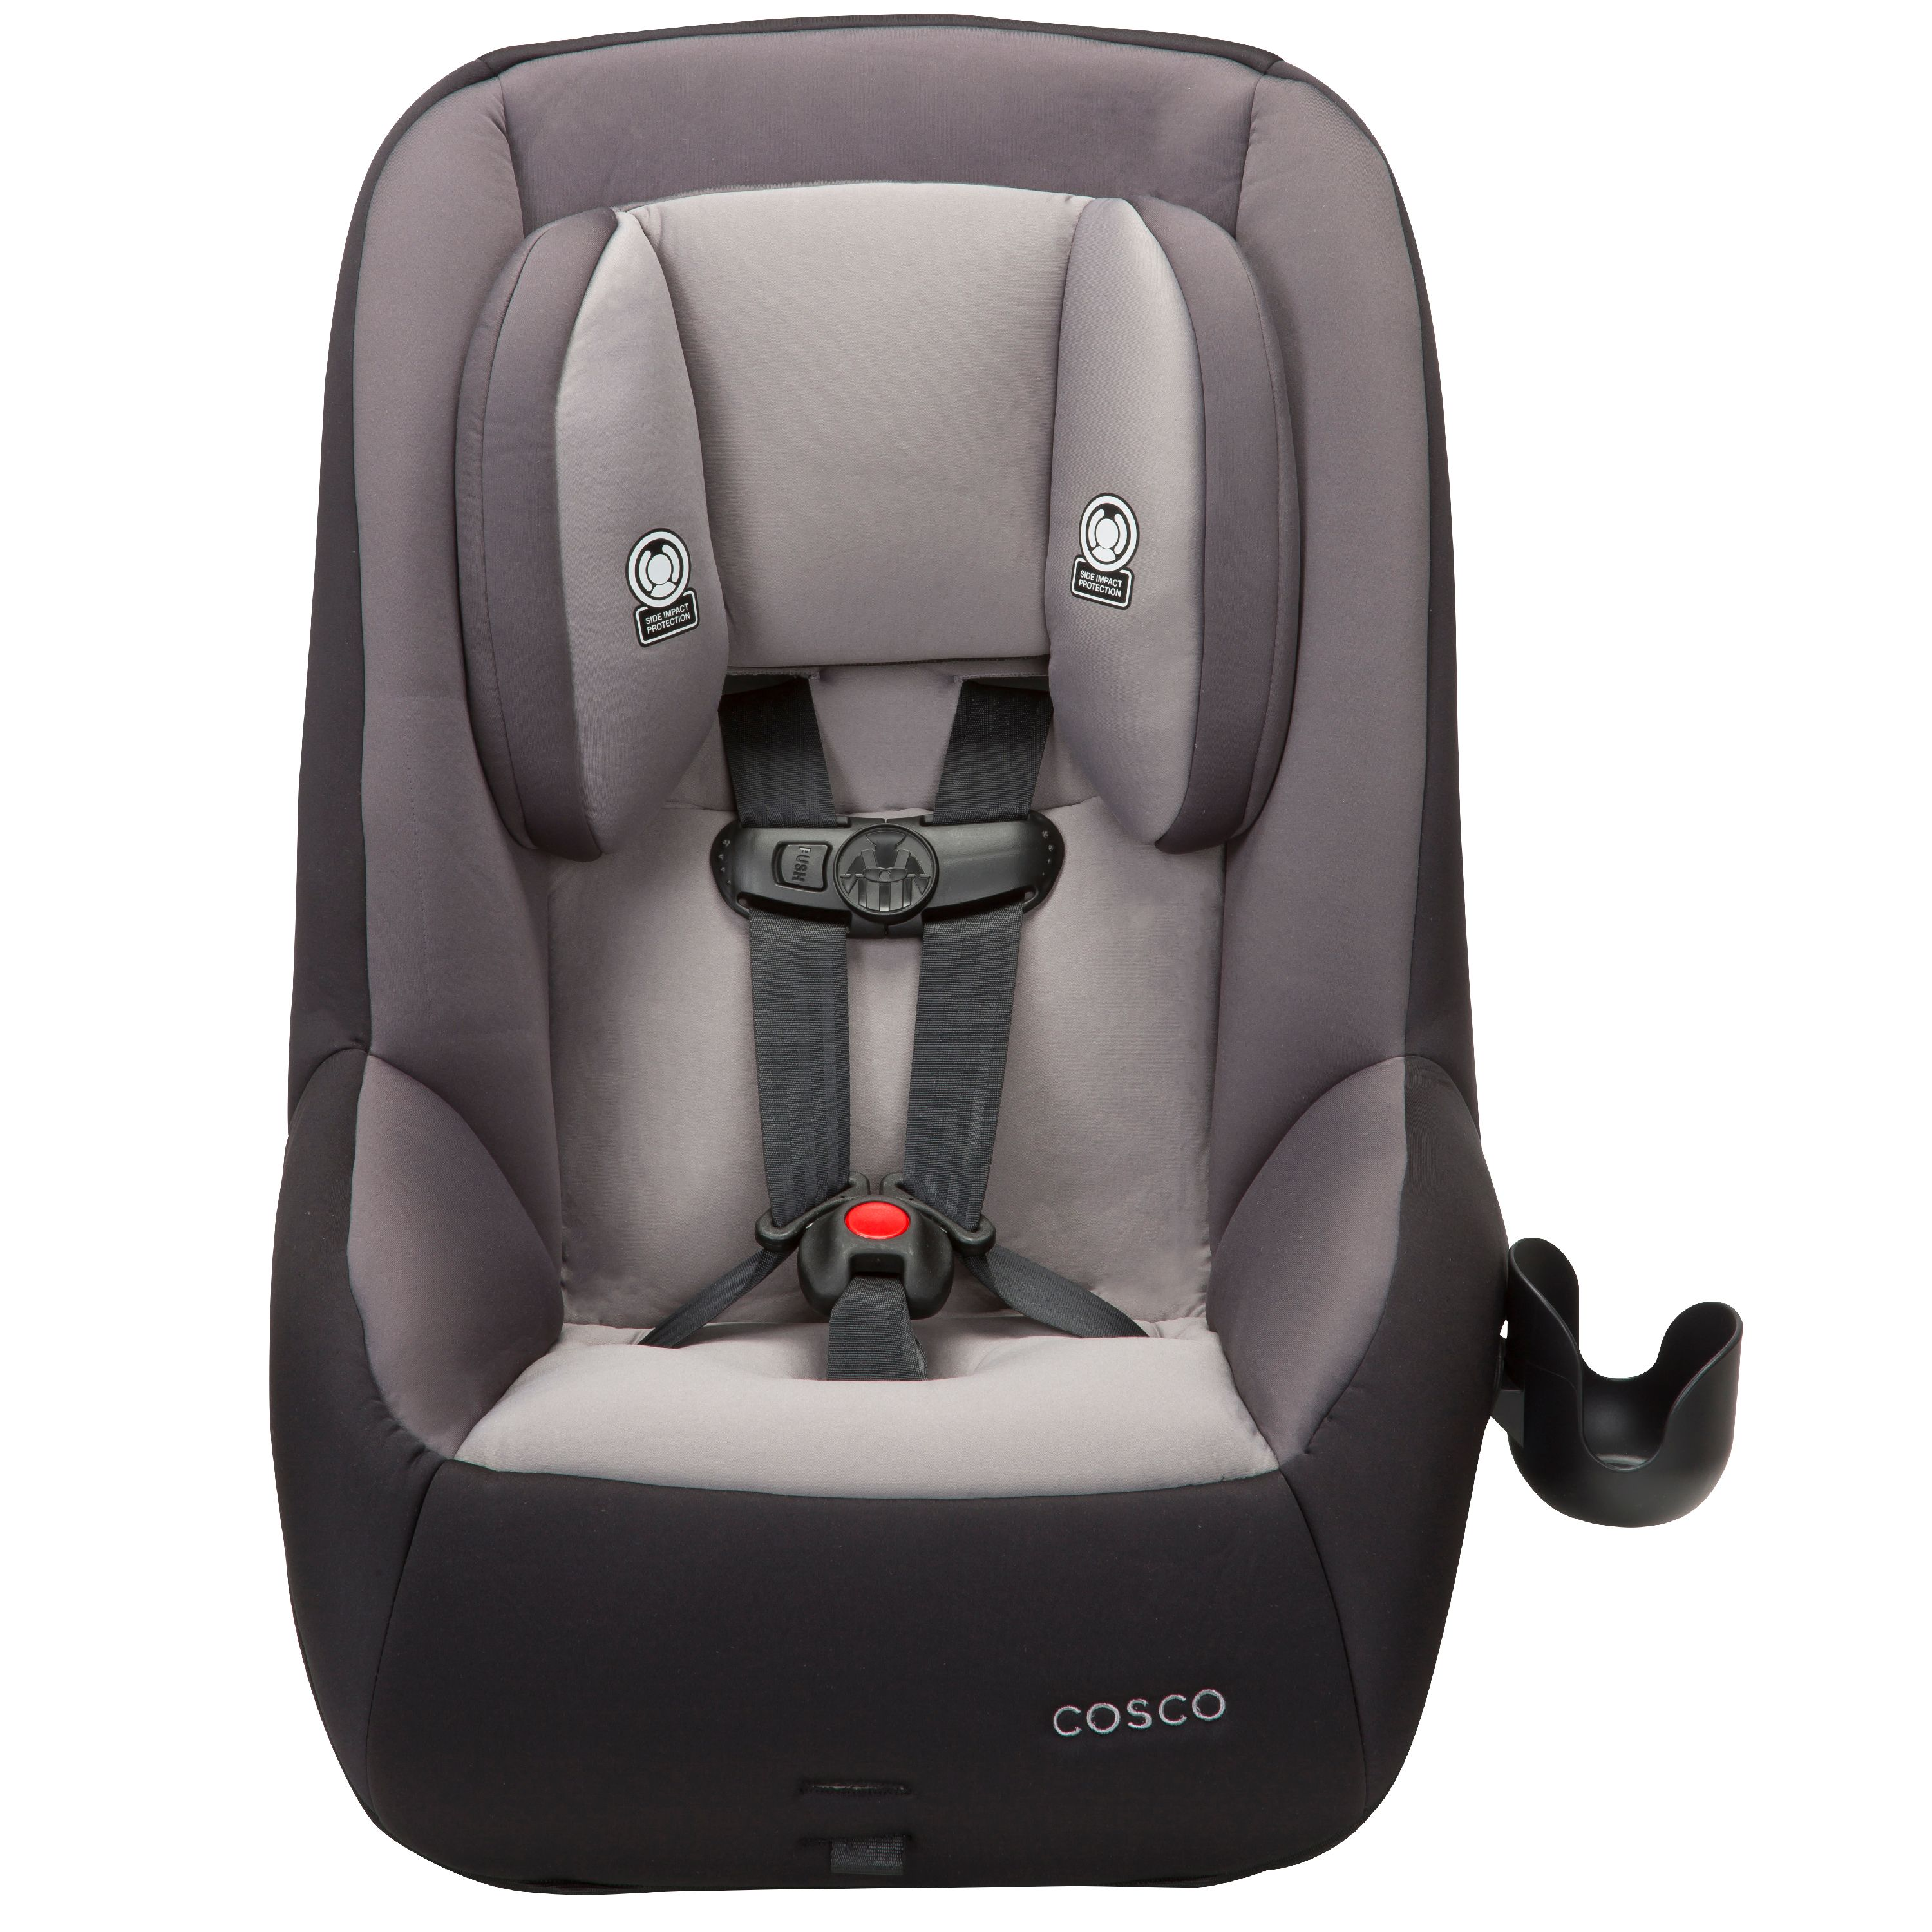 Cosco MightyFit 65 Rear & Forward Facing Convertible Car Seat, Anchor